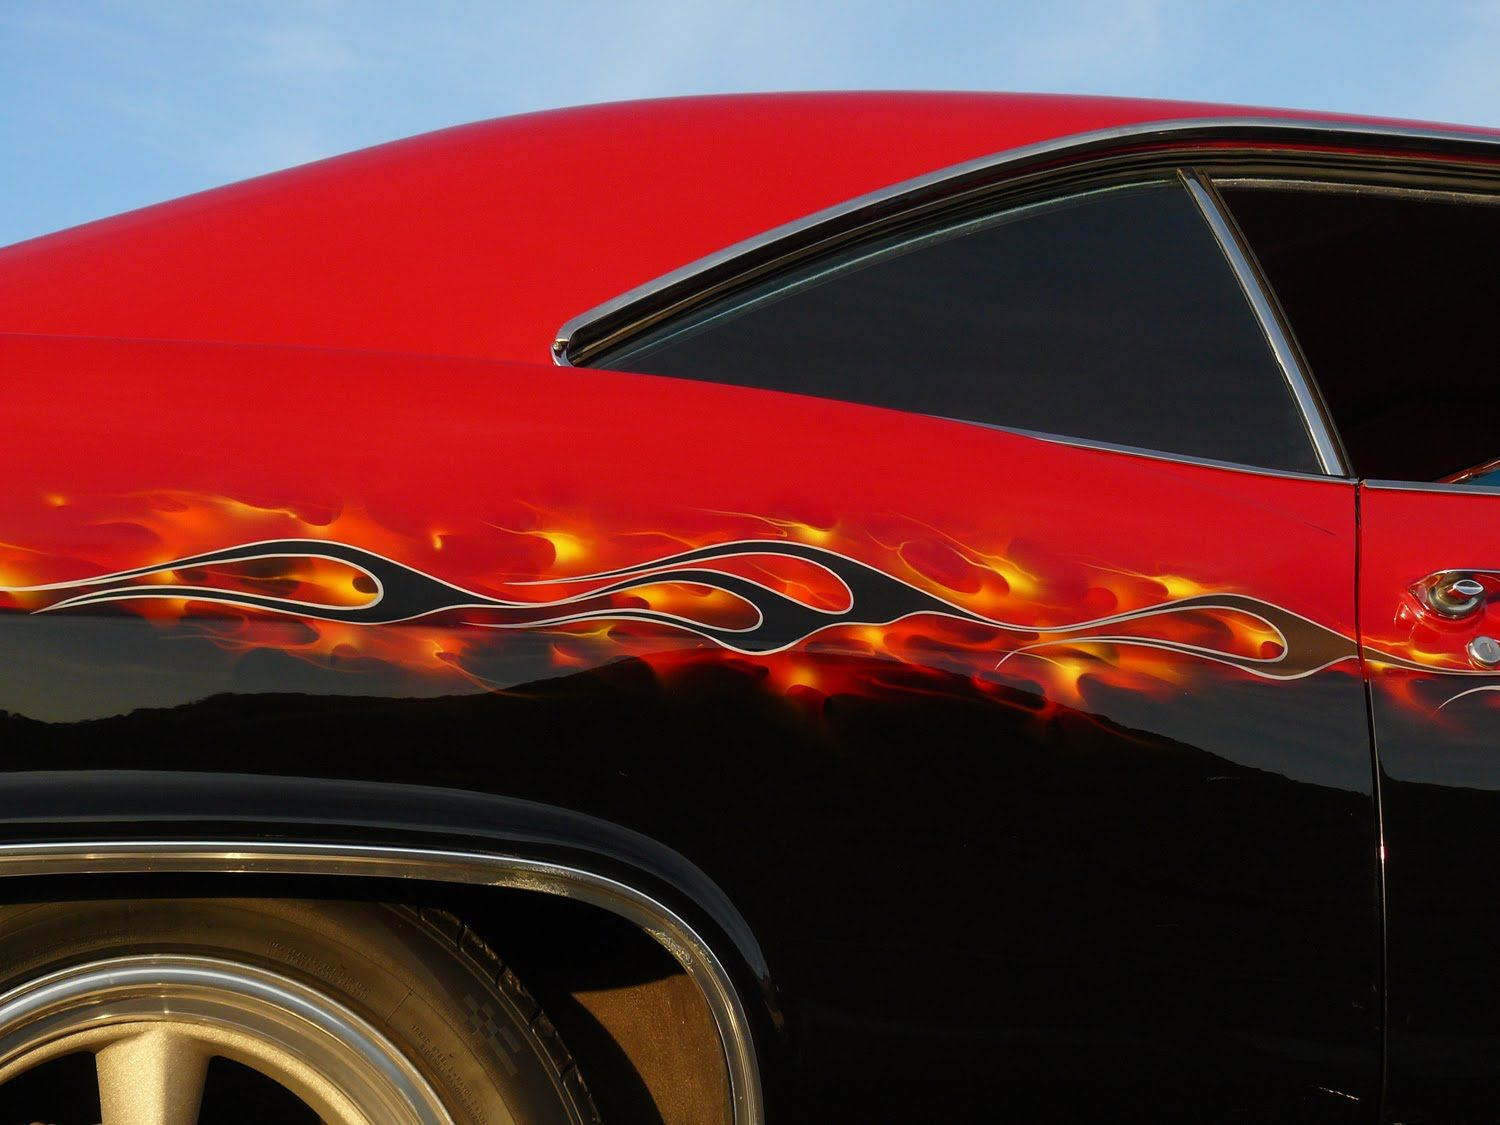 Images Of Cars Painted With Flames